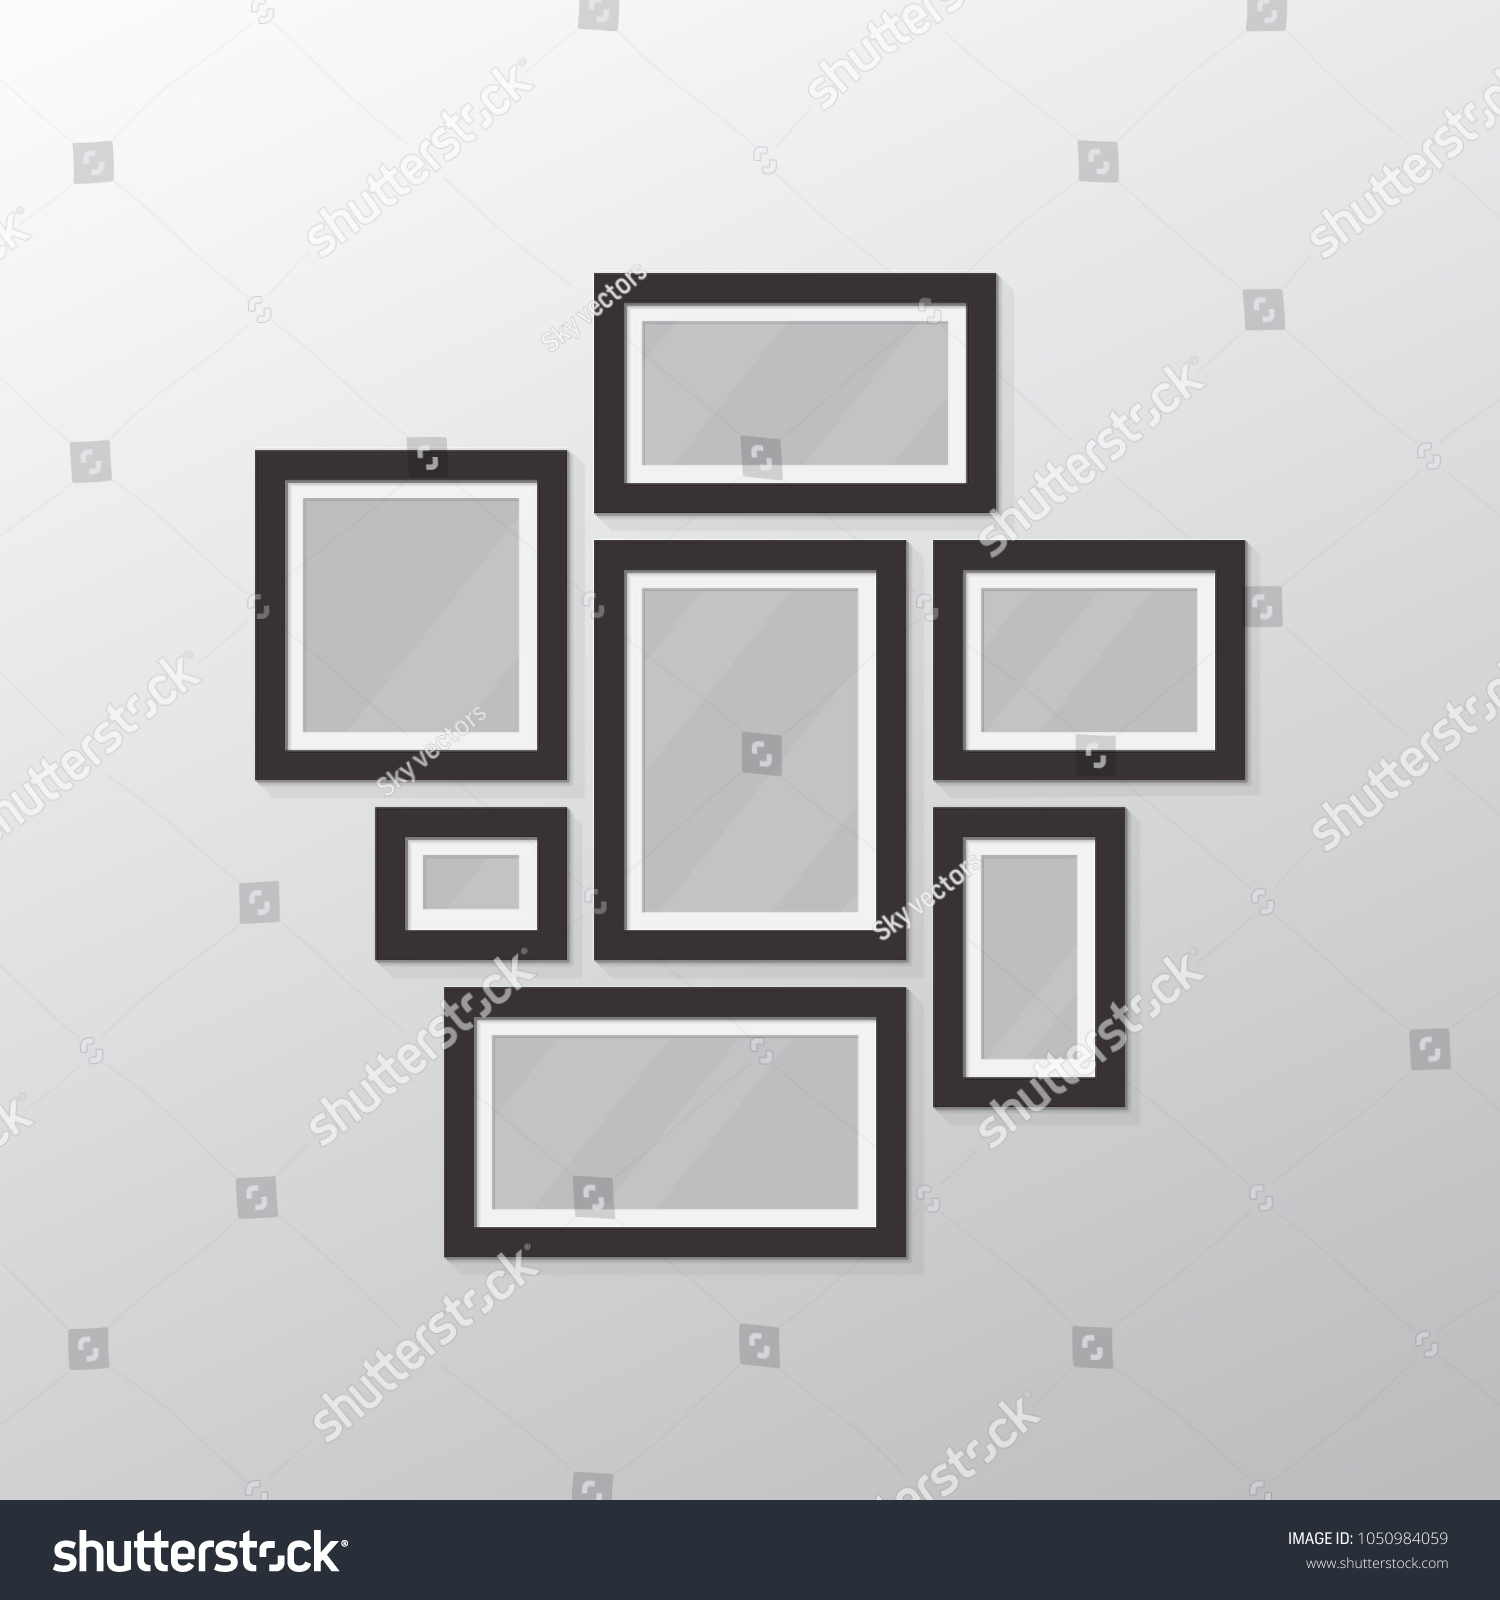 Photo Collage All Sizes Frames Template Stock Vector HD (Royalty ...